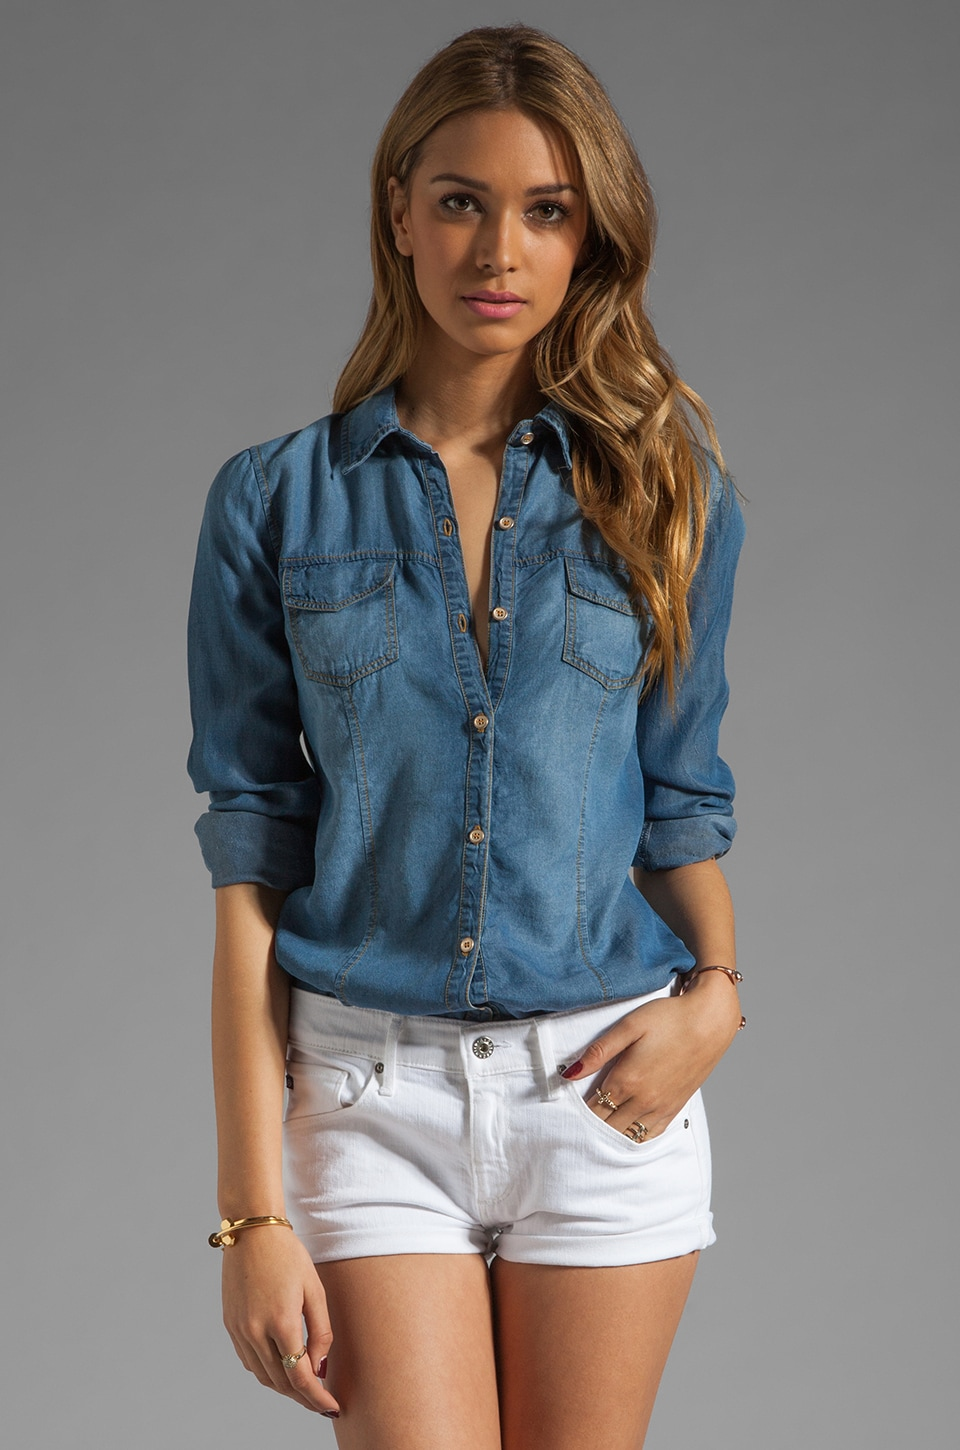 Splendid Solid Chambray Shirt in Indigo